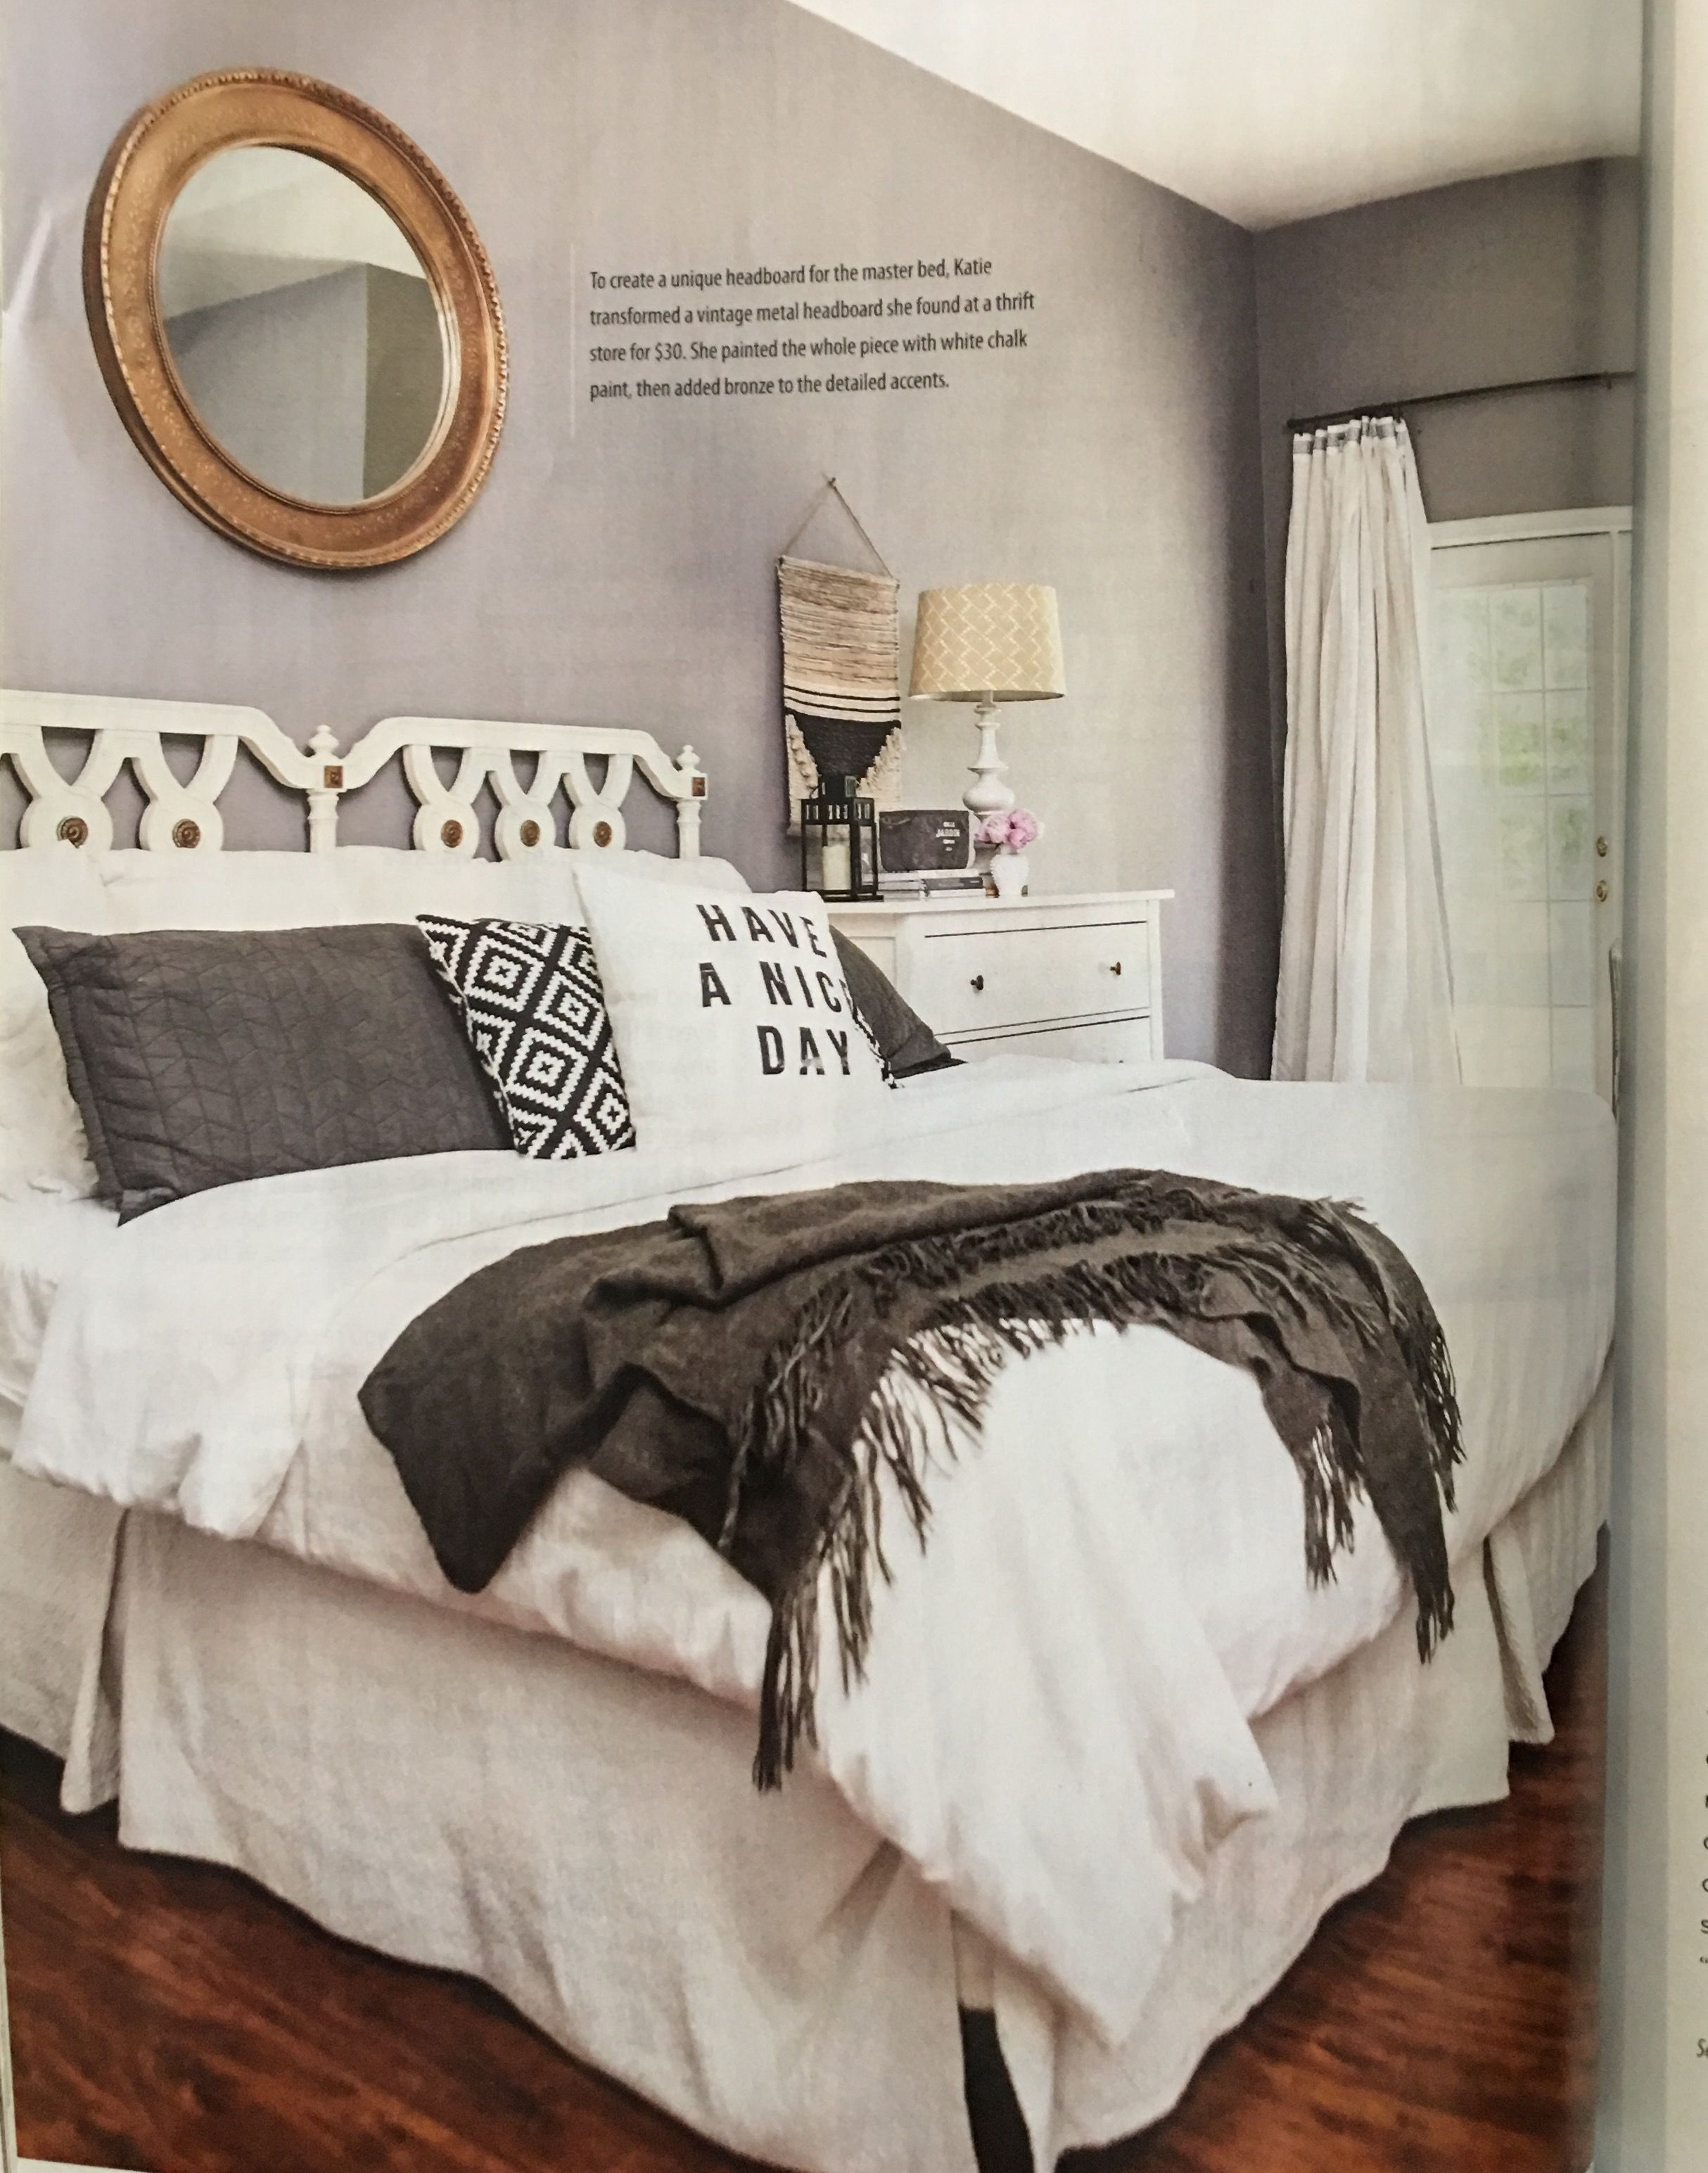 Vintage master bedroom decor  Pin by Brenda Smith on HOME  Pinterest